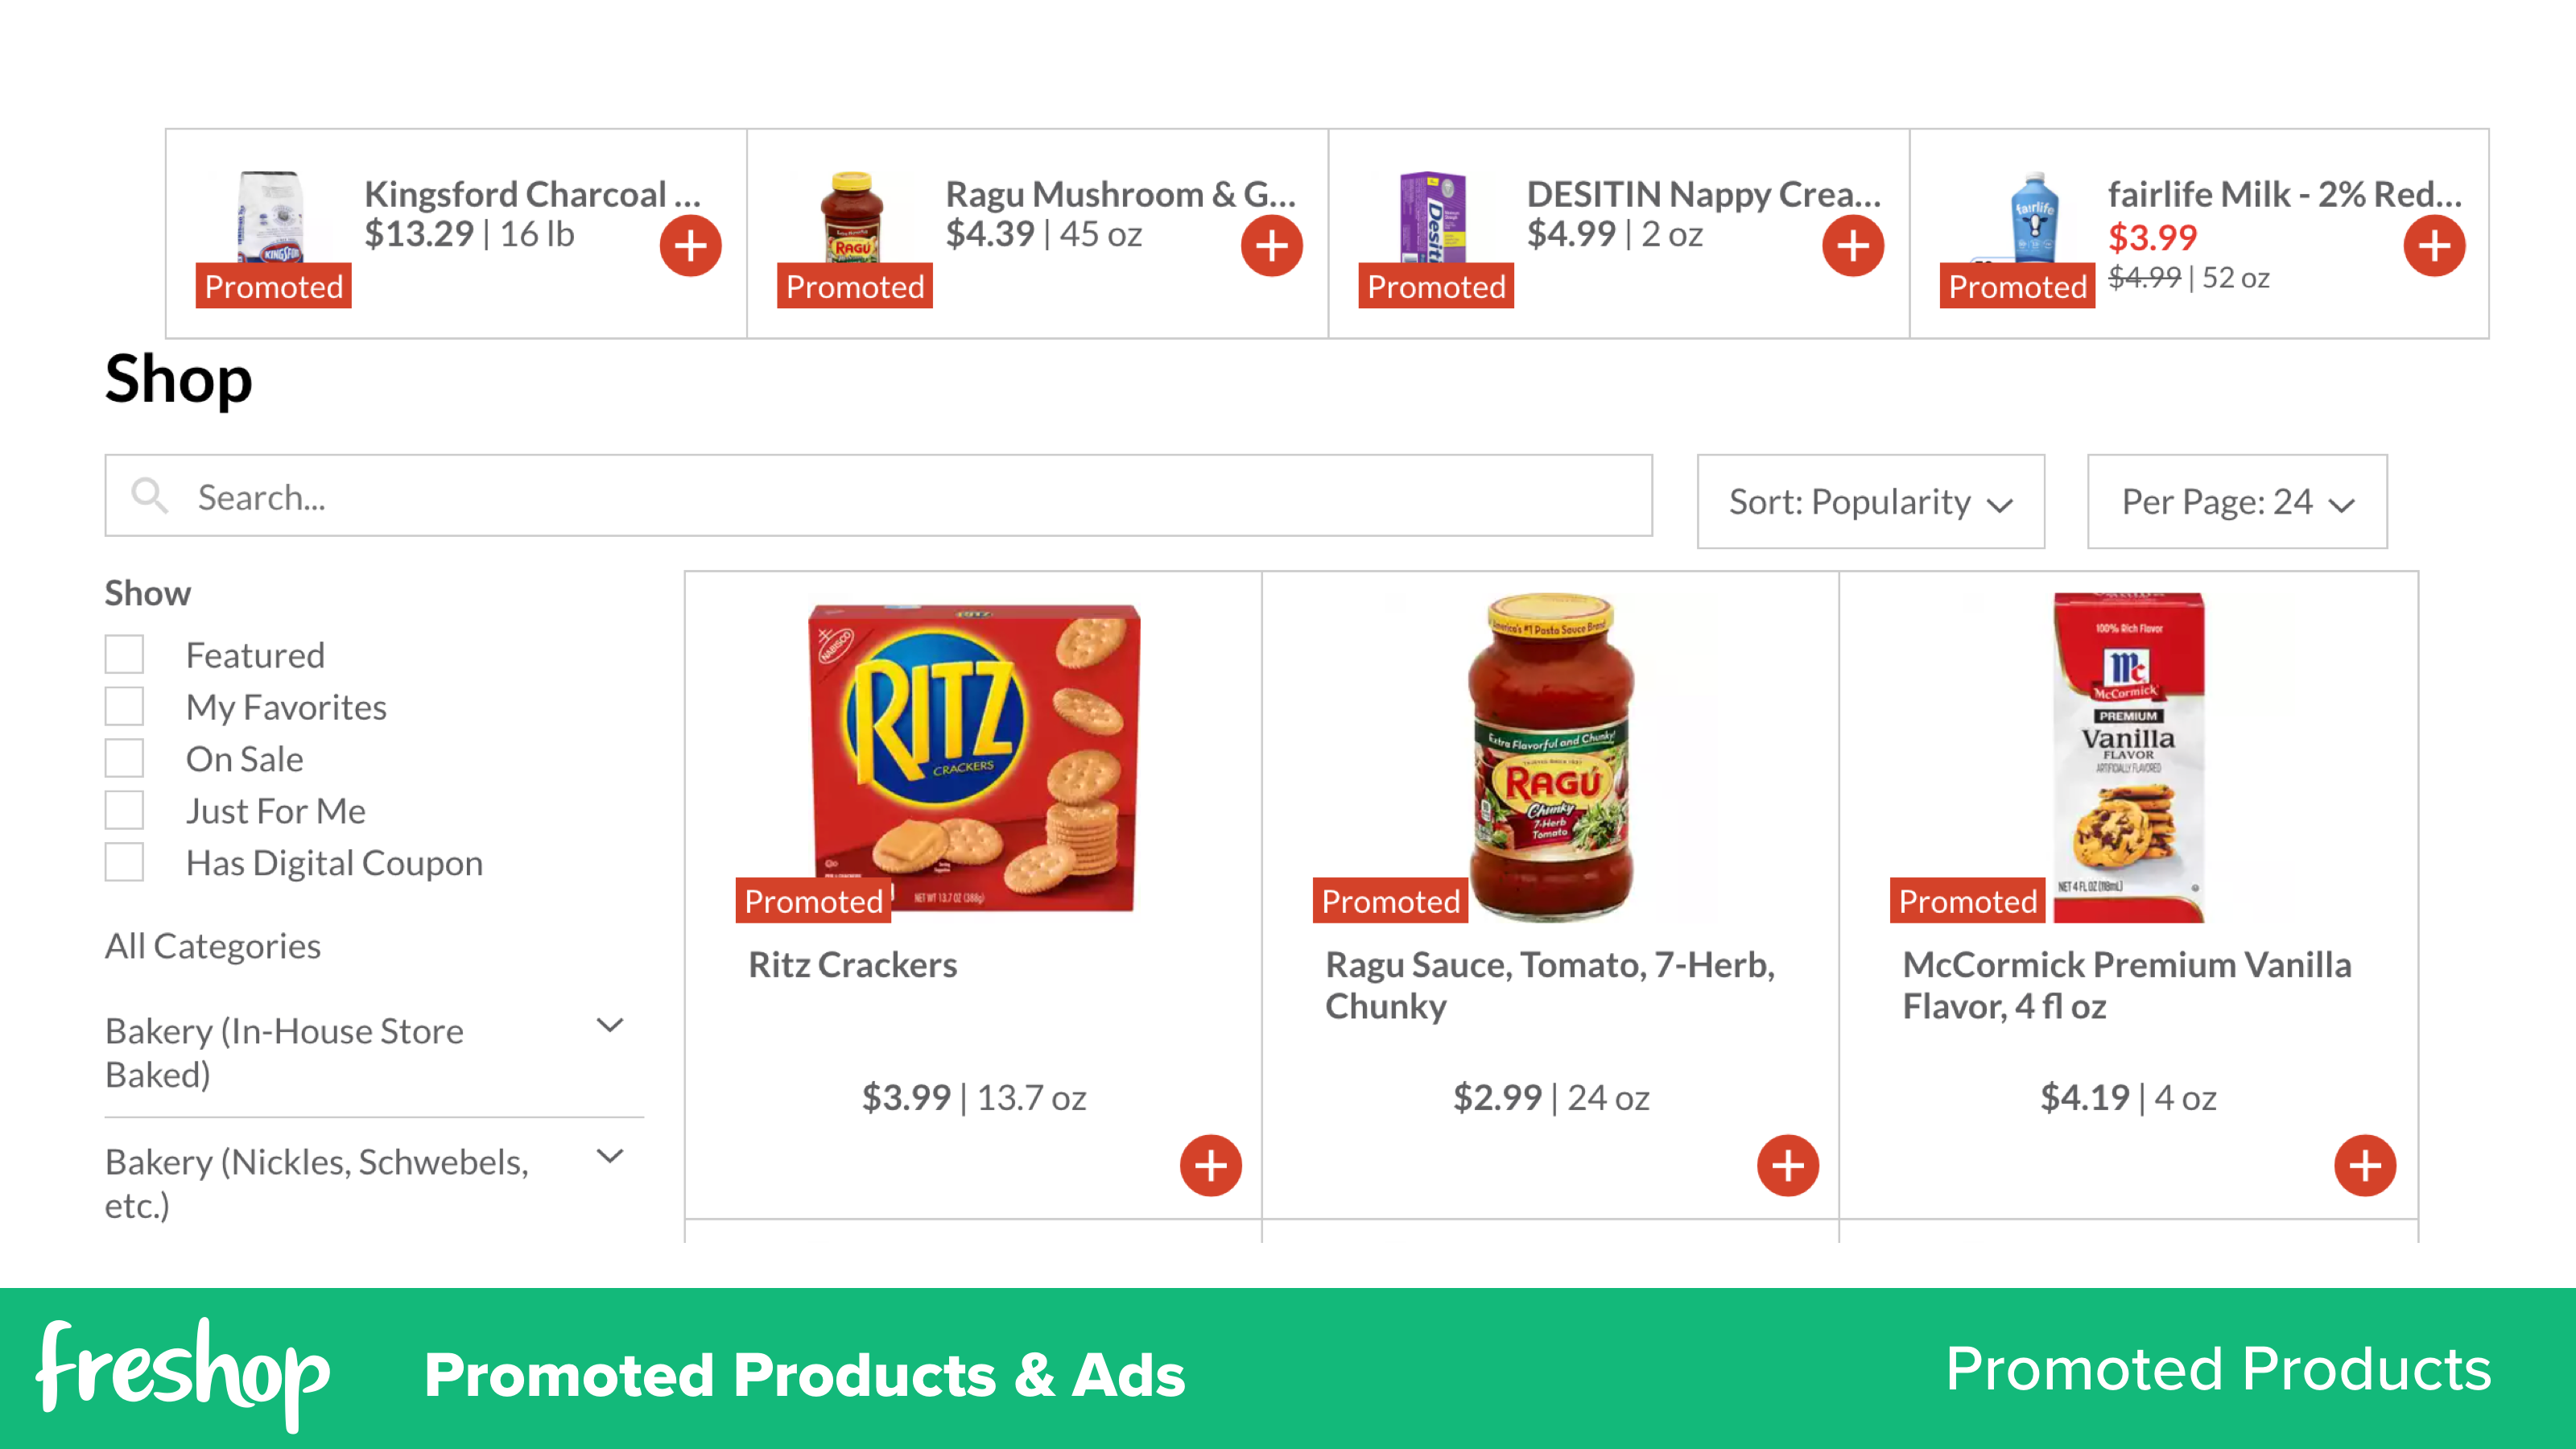 Freshop: Promoted Products & Ads   Promoted Products